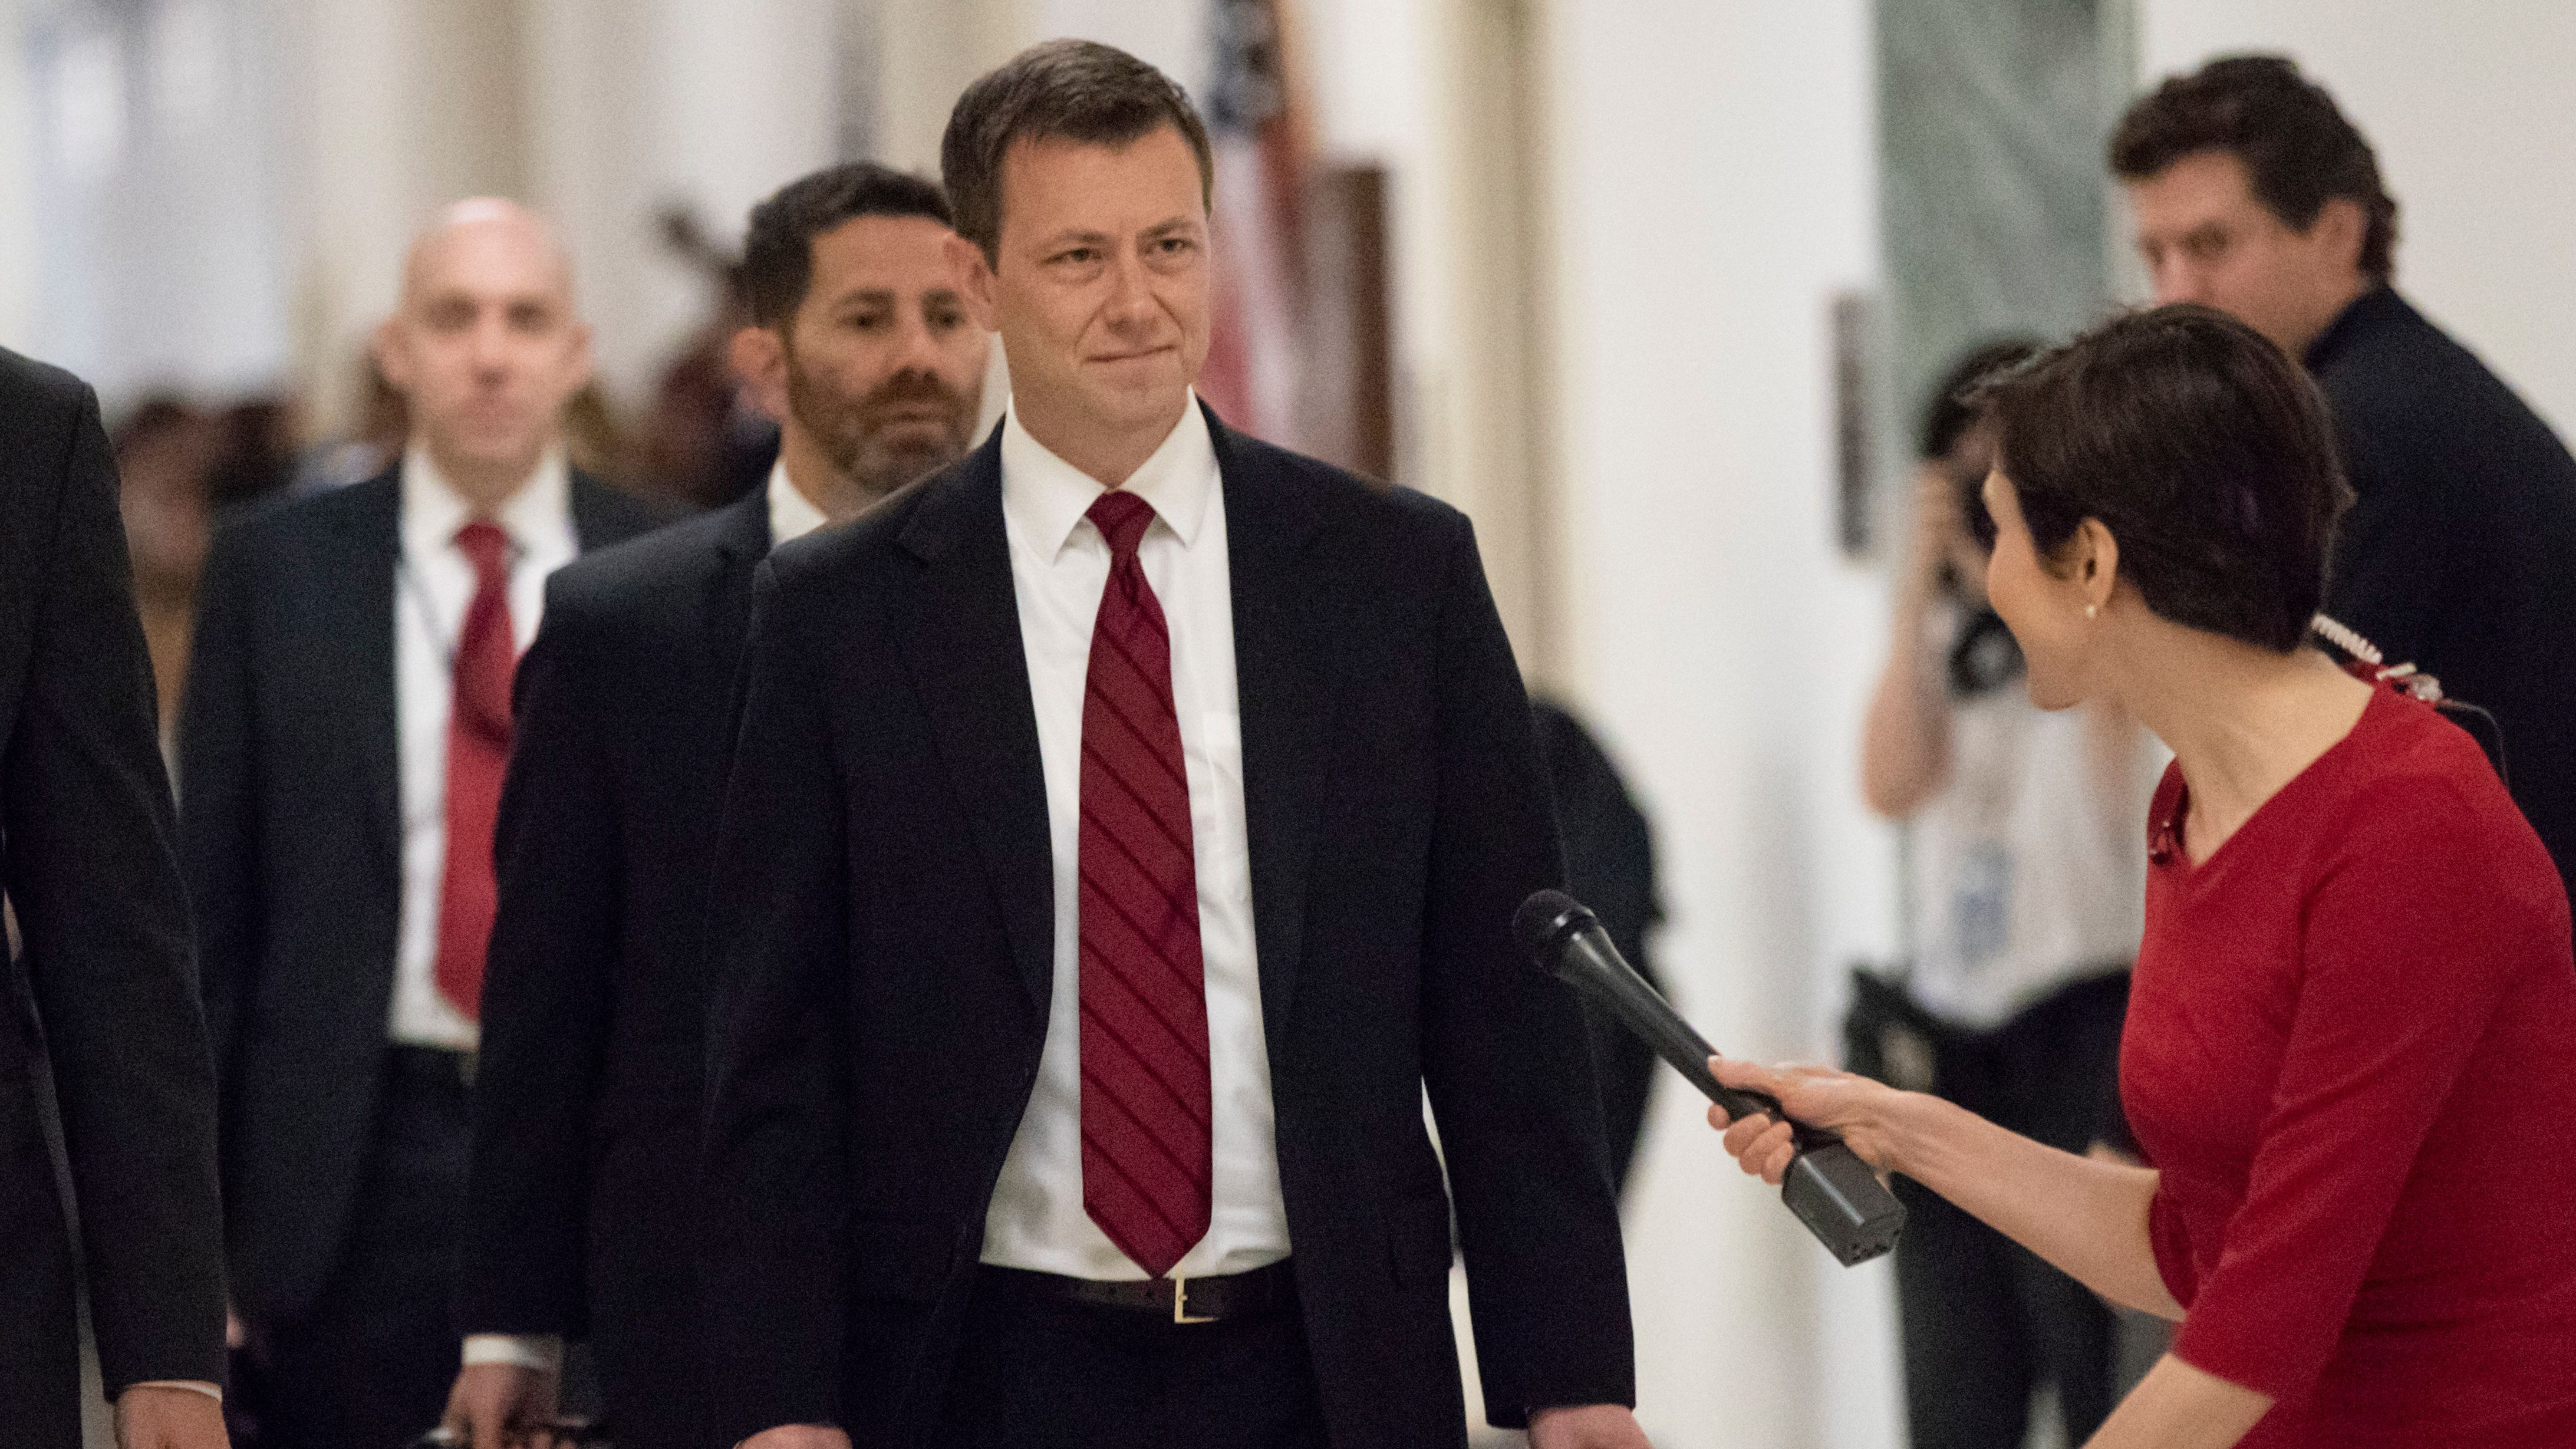 Peter Strzok, the FBI agent facing criticism following a series of anti-Trump text messages, walks to gives a deposition before the House Judiciary Committee on Capitol Hill in Washington, Wednesday, June 27, 2018. (AP Photo/J. Scott Applewhite)